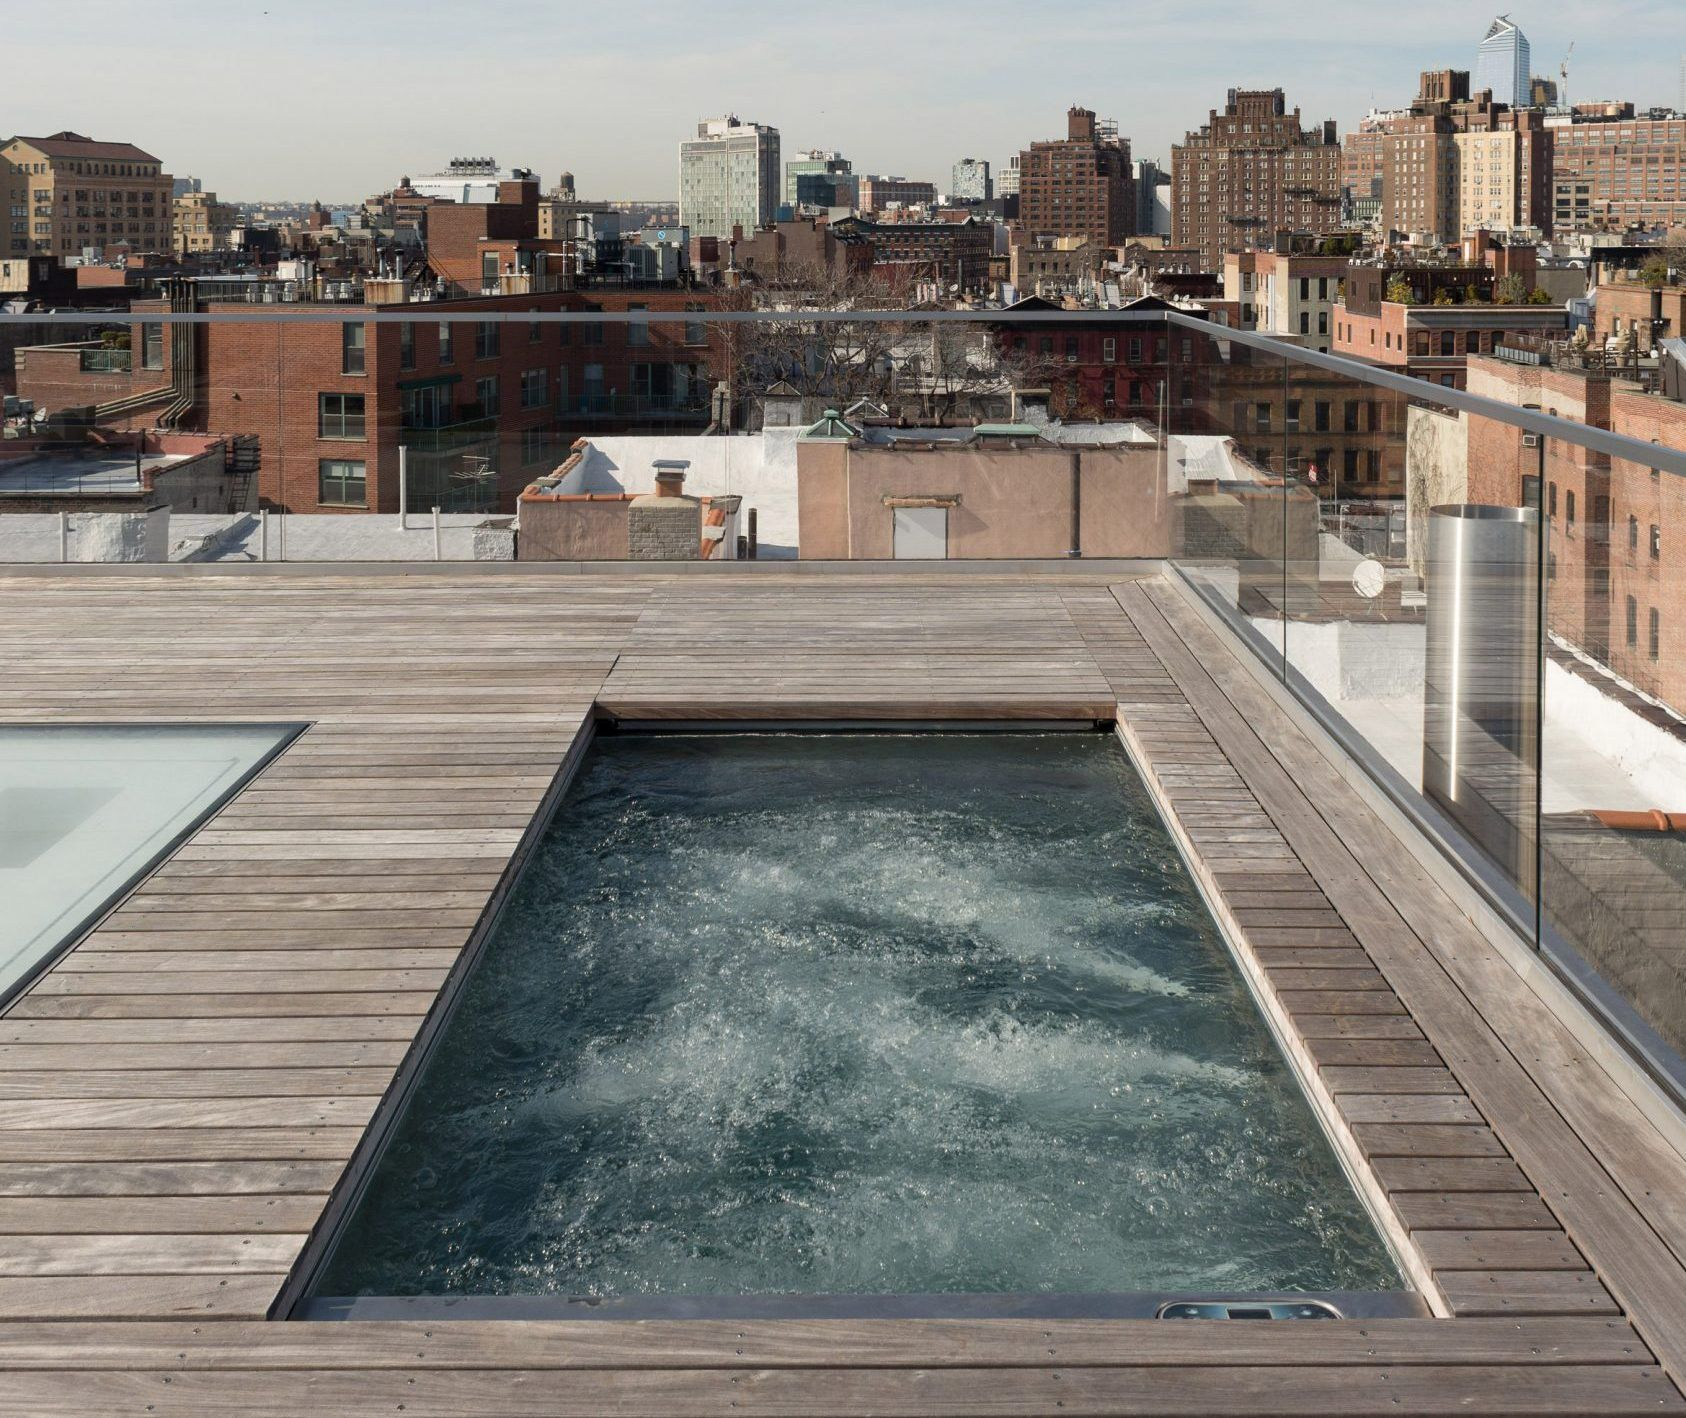 Tbd Design Studio Gave This West Village Penthouse A Complete Overhaul And A Private Rooftop Pool 6sqft Hotel Pool Design Rooftop Pool Rooftop Design